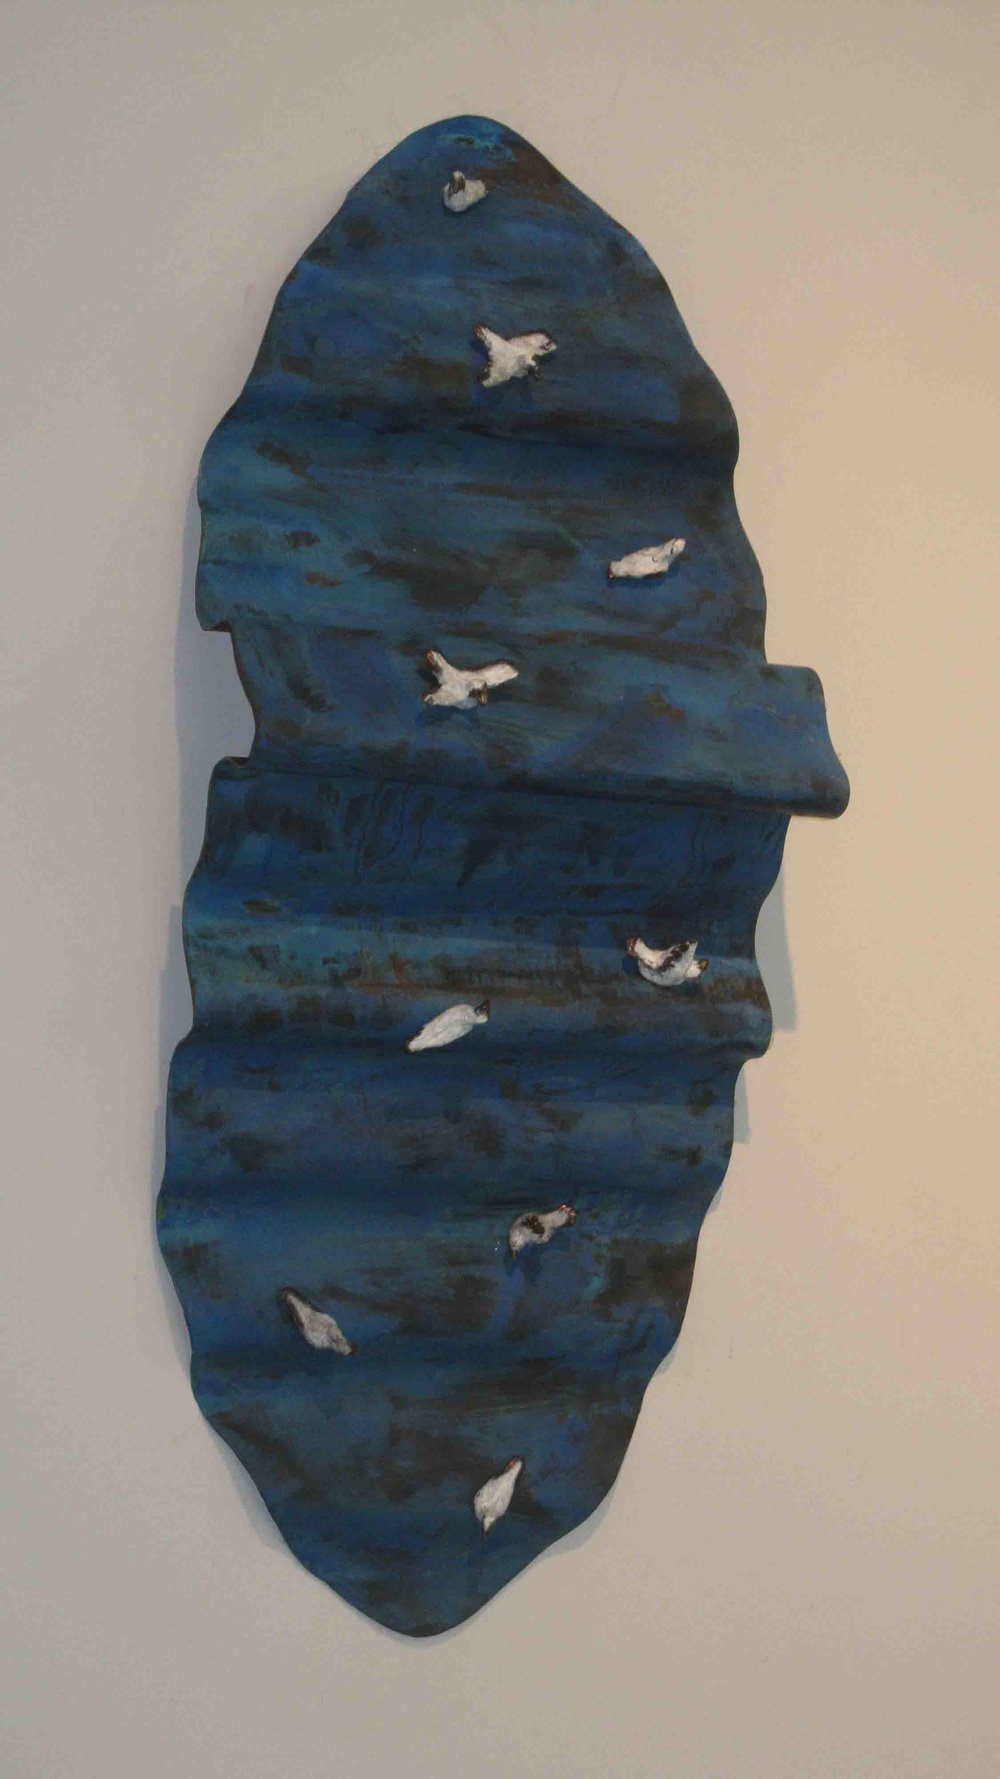 'Seabirds on a blue wave'  2011 0.5m by 0.3m, Bronze, copper & patina